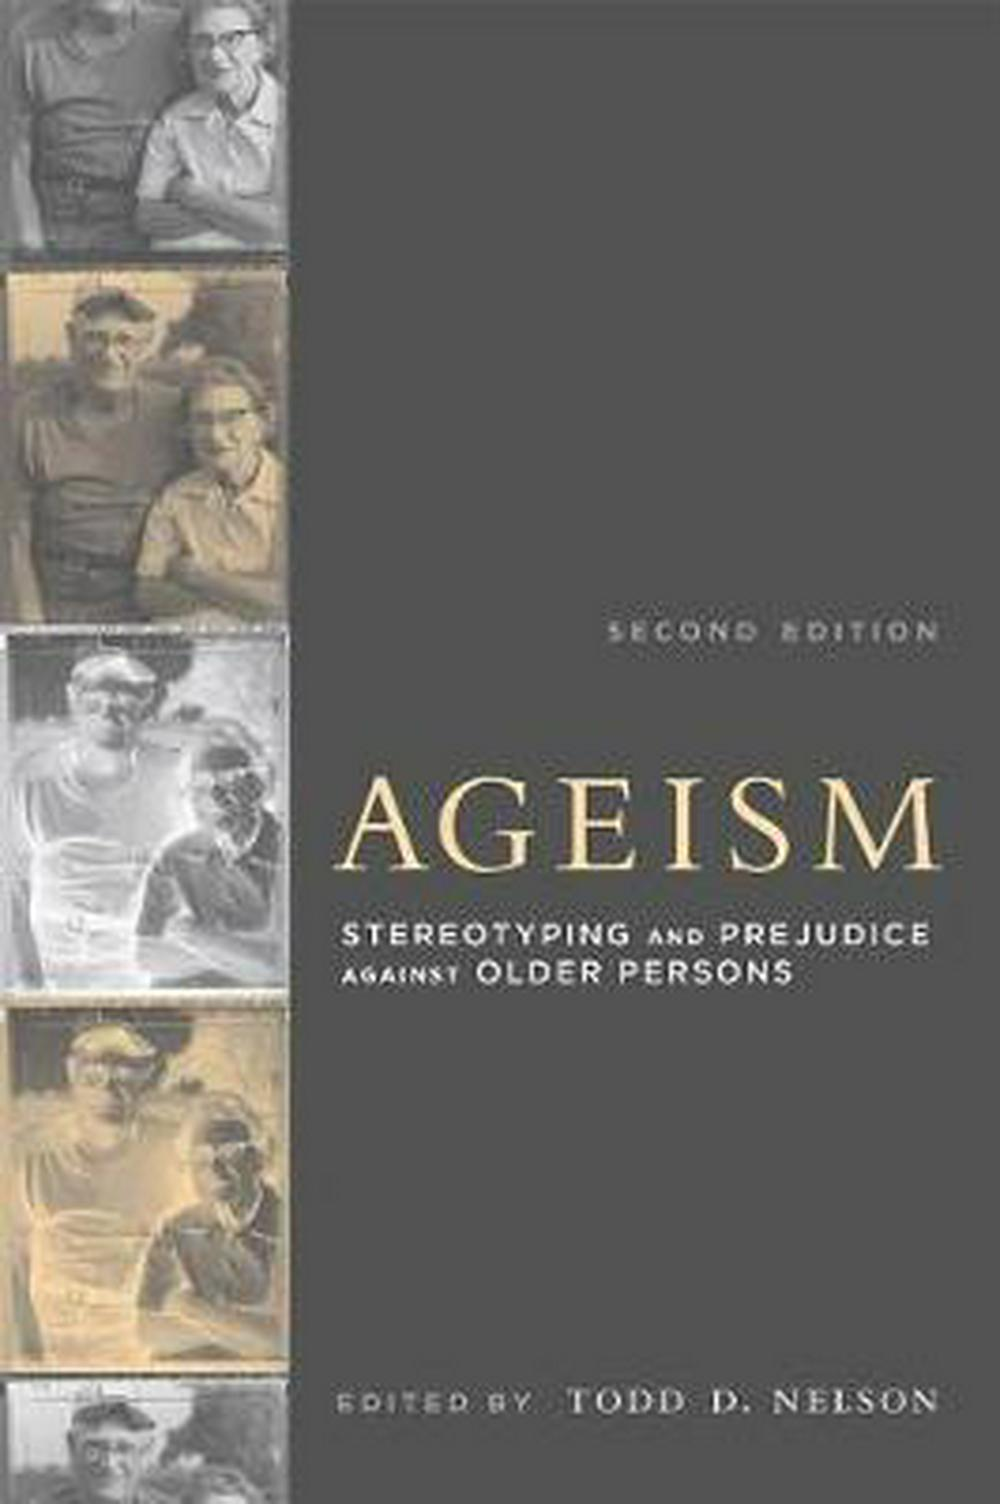 Ageism: Stereotyping and Prejudice Against Older Persons